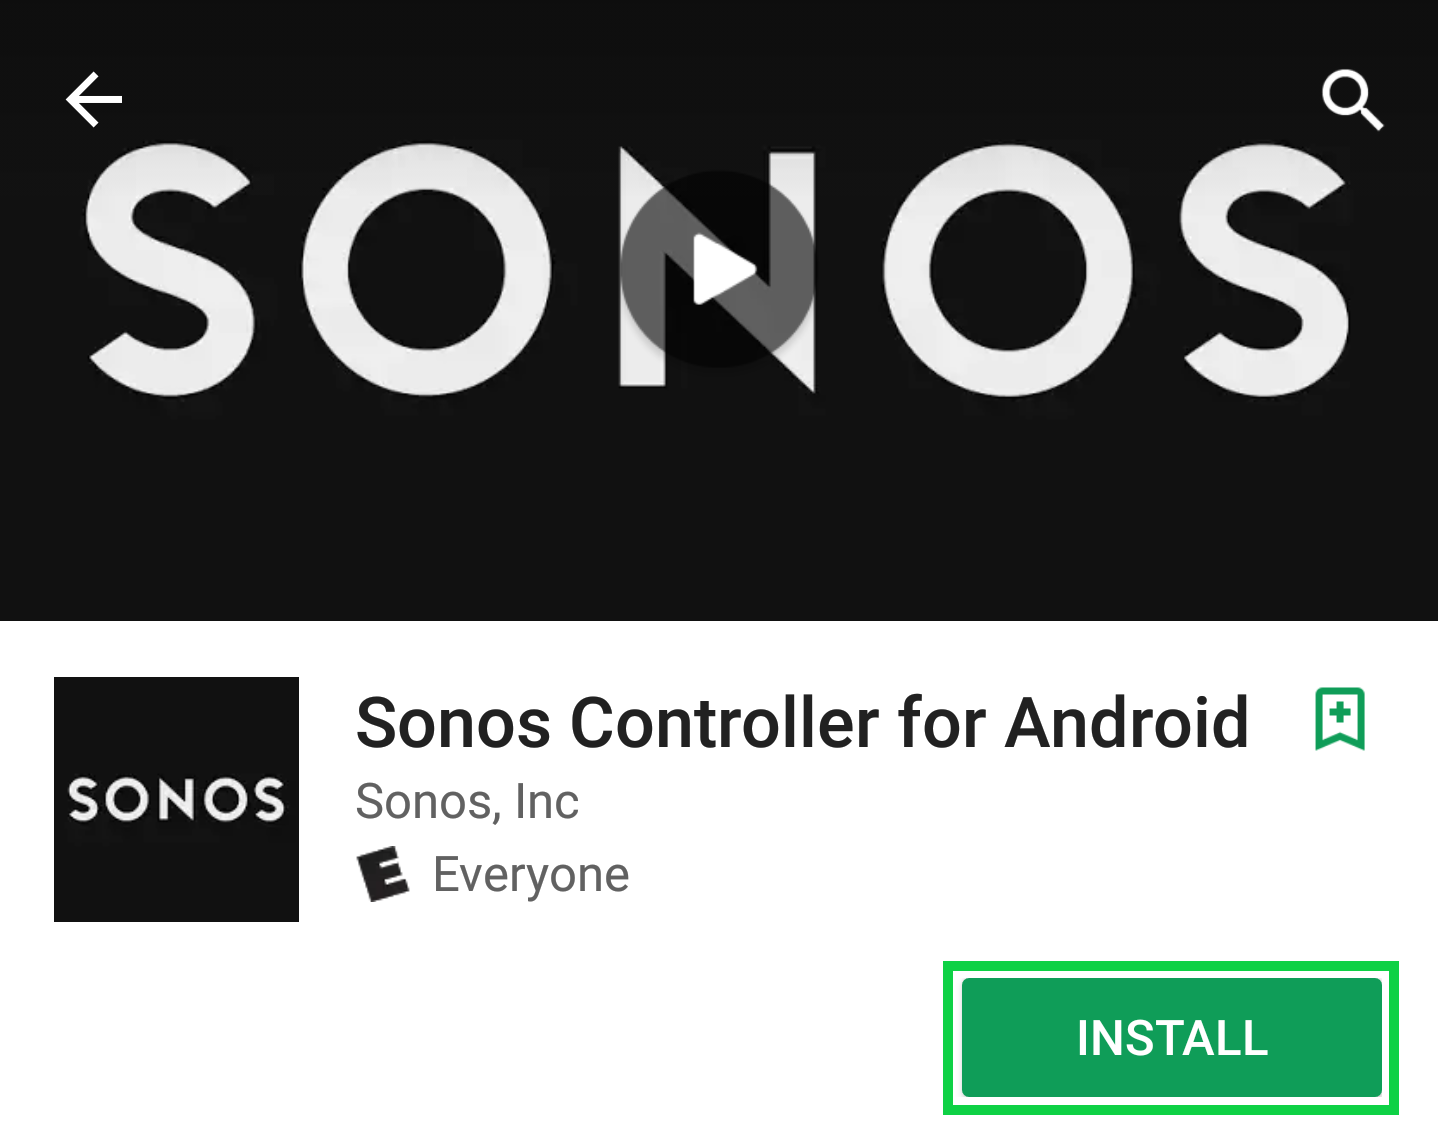 Sonos app page with the install button highlighted.